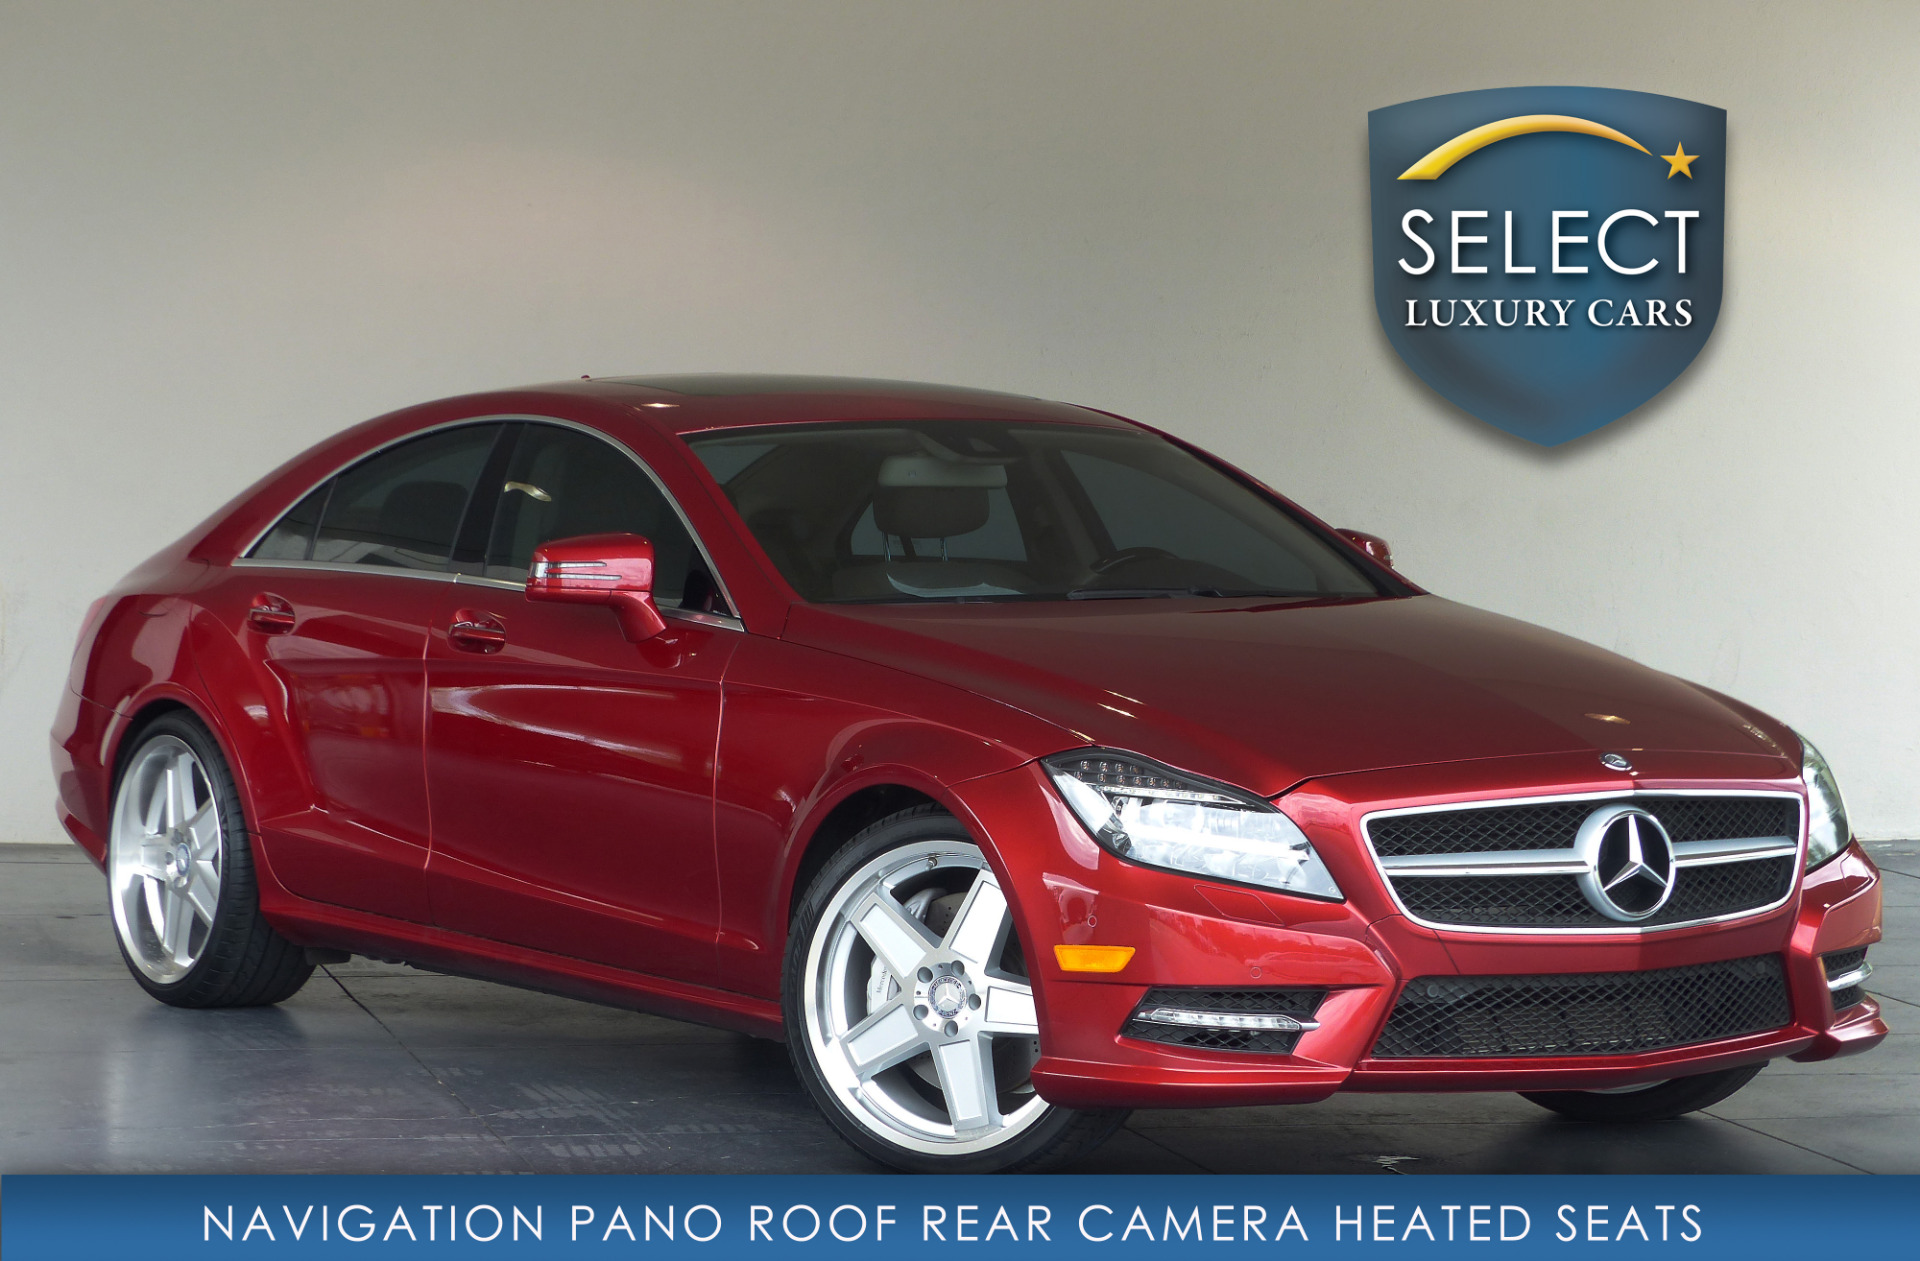 Select Luxury Cars In Marietta Ga: Used 2014 Mercedes-Benz CLS CLS 550